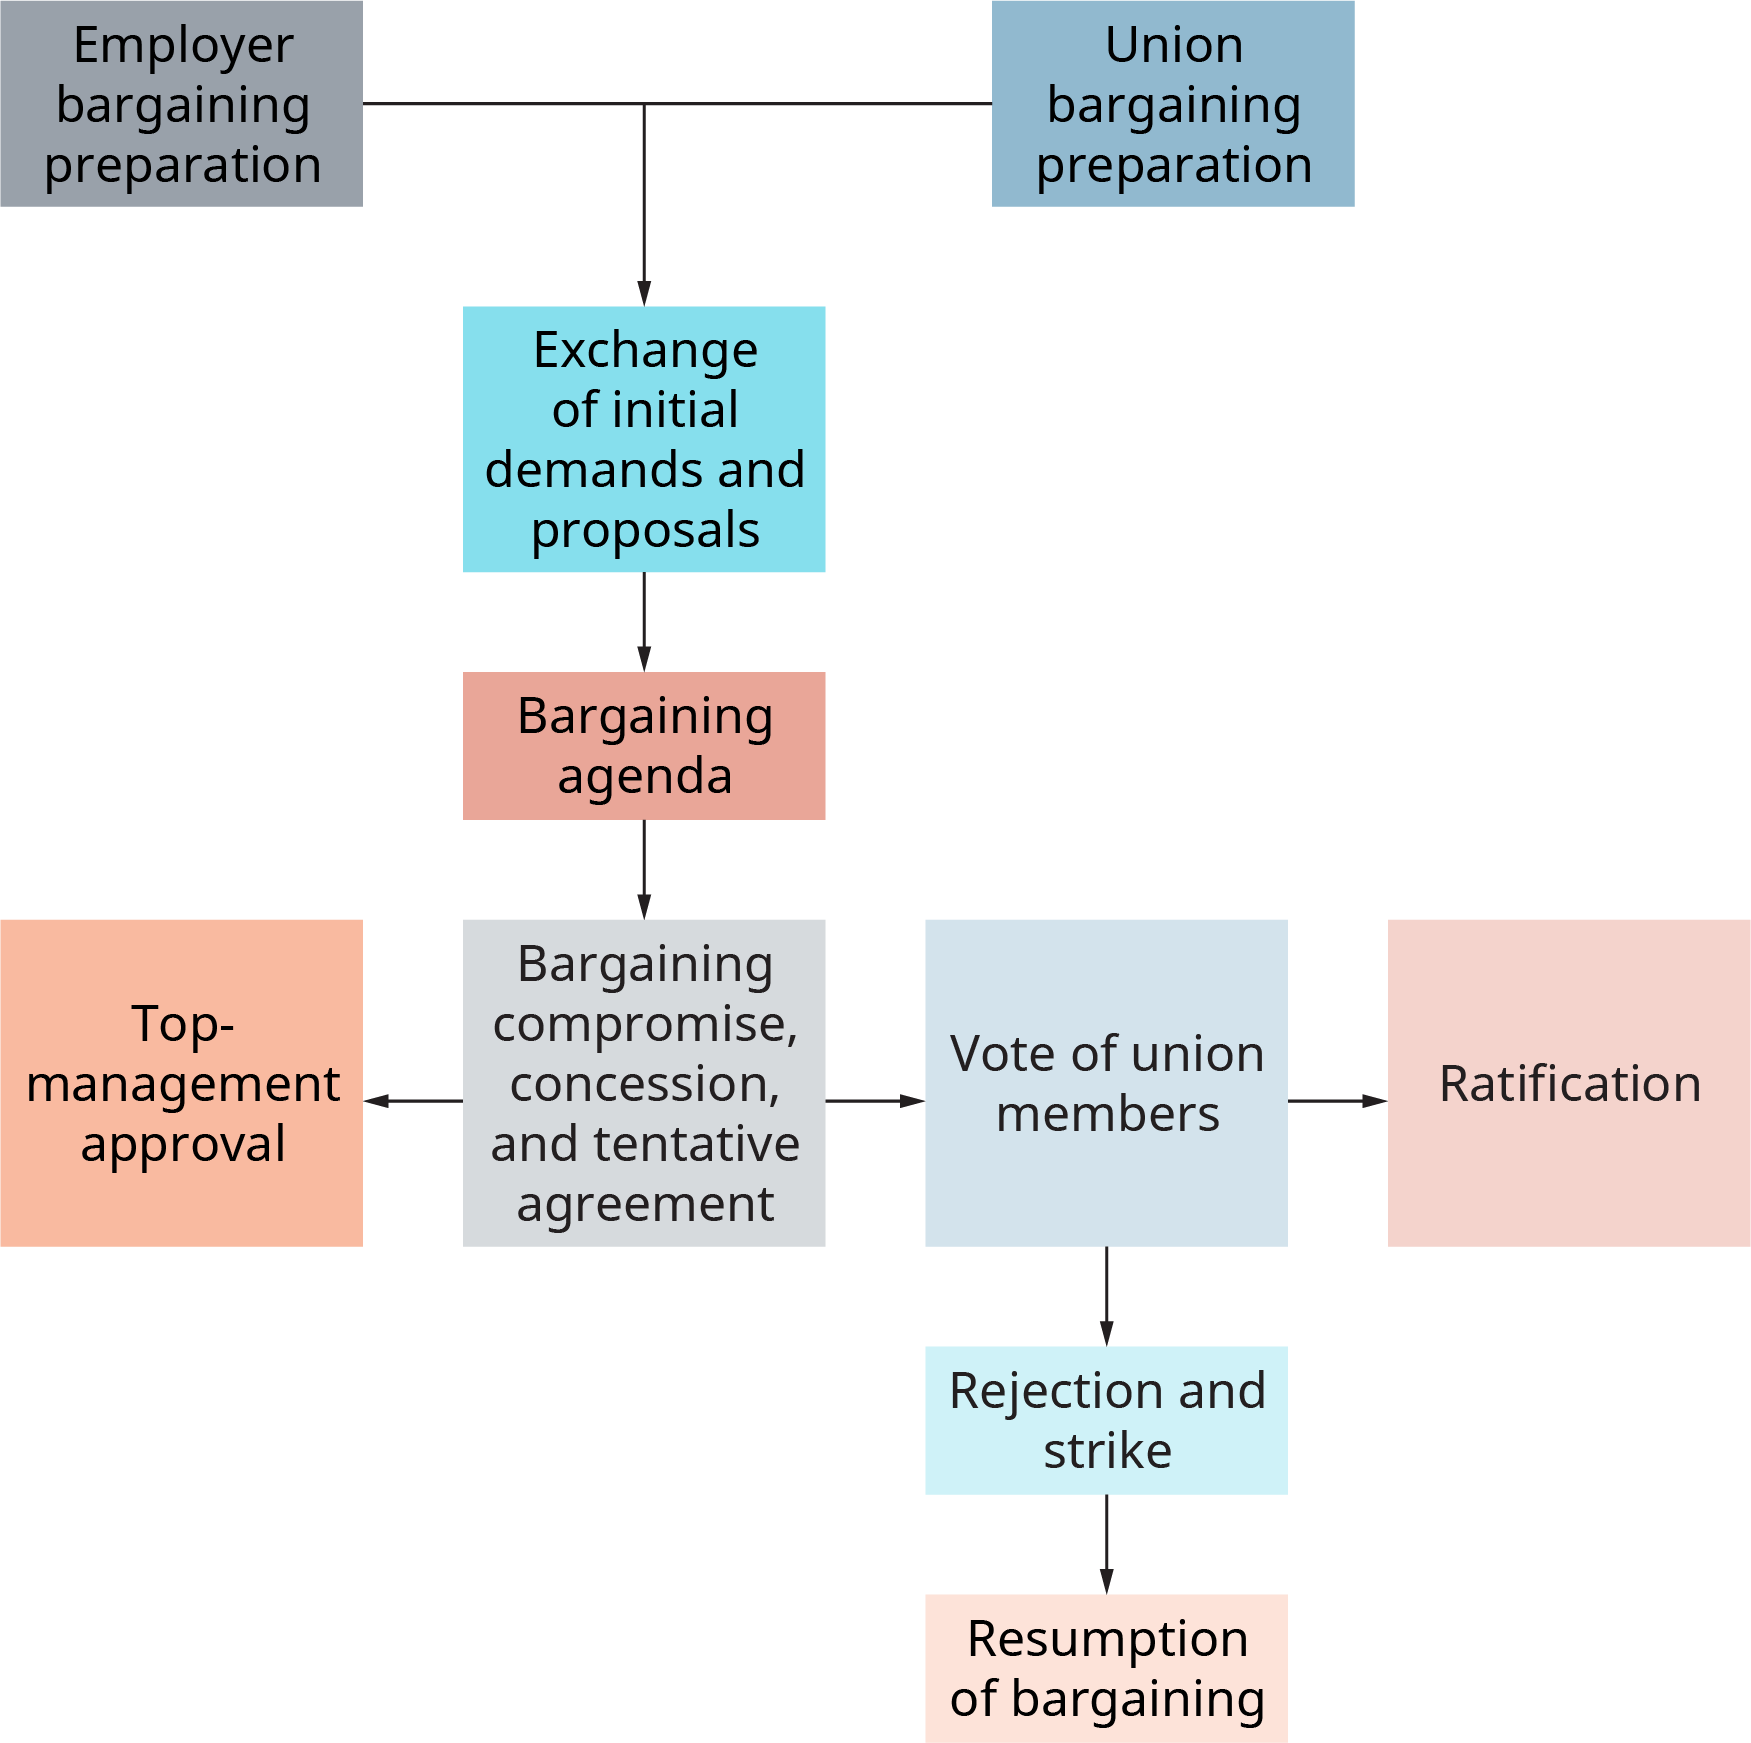 The chart starts with two separate boxes, one labeled employer bargaining preparation, and the other label reads union bargaining preparation. These both flow into a box labeled exchange of initial demands and proposals. This flows into bargaining agenda. This flows into bargaining compromise, concession, and tentative agreement. This branches in two directions. In one direction, it branches to top management approval. This is the end of this branch. In the other direction, it flows into vote of union members. This then flows into 2 directions. In one direction, it branches to ratification, which is the end of this branch. In the other direction, it flows into rejection and strike, which then flows into resumption of bargaining. This is the end of the flow chart.